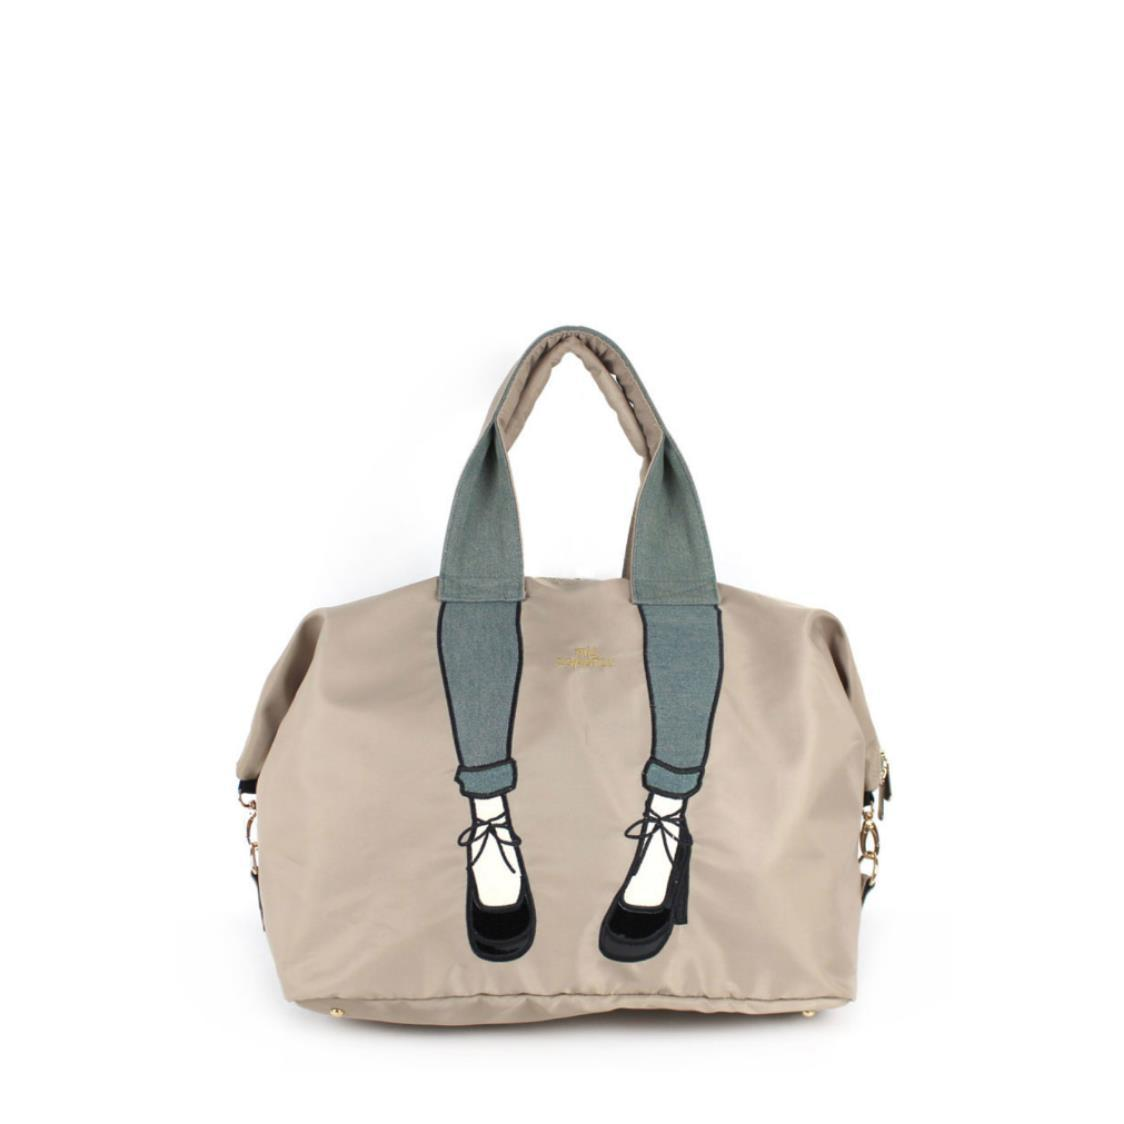 2-Way Use Jeans with High Heels Travel Bag Beige